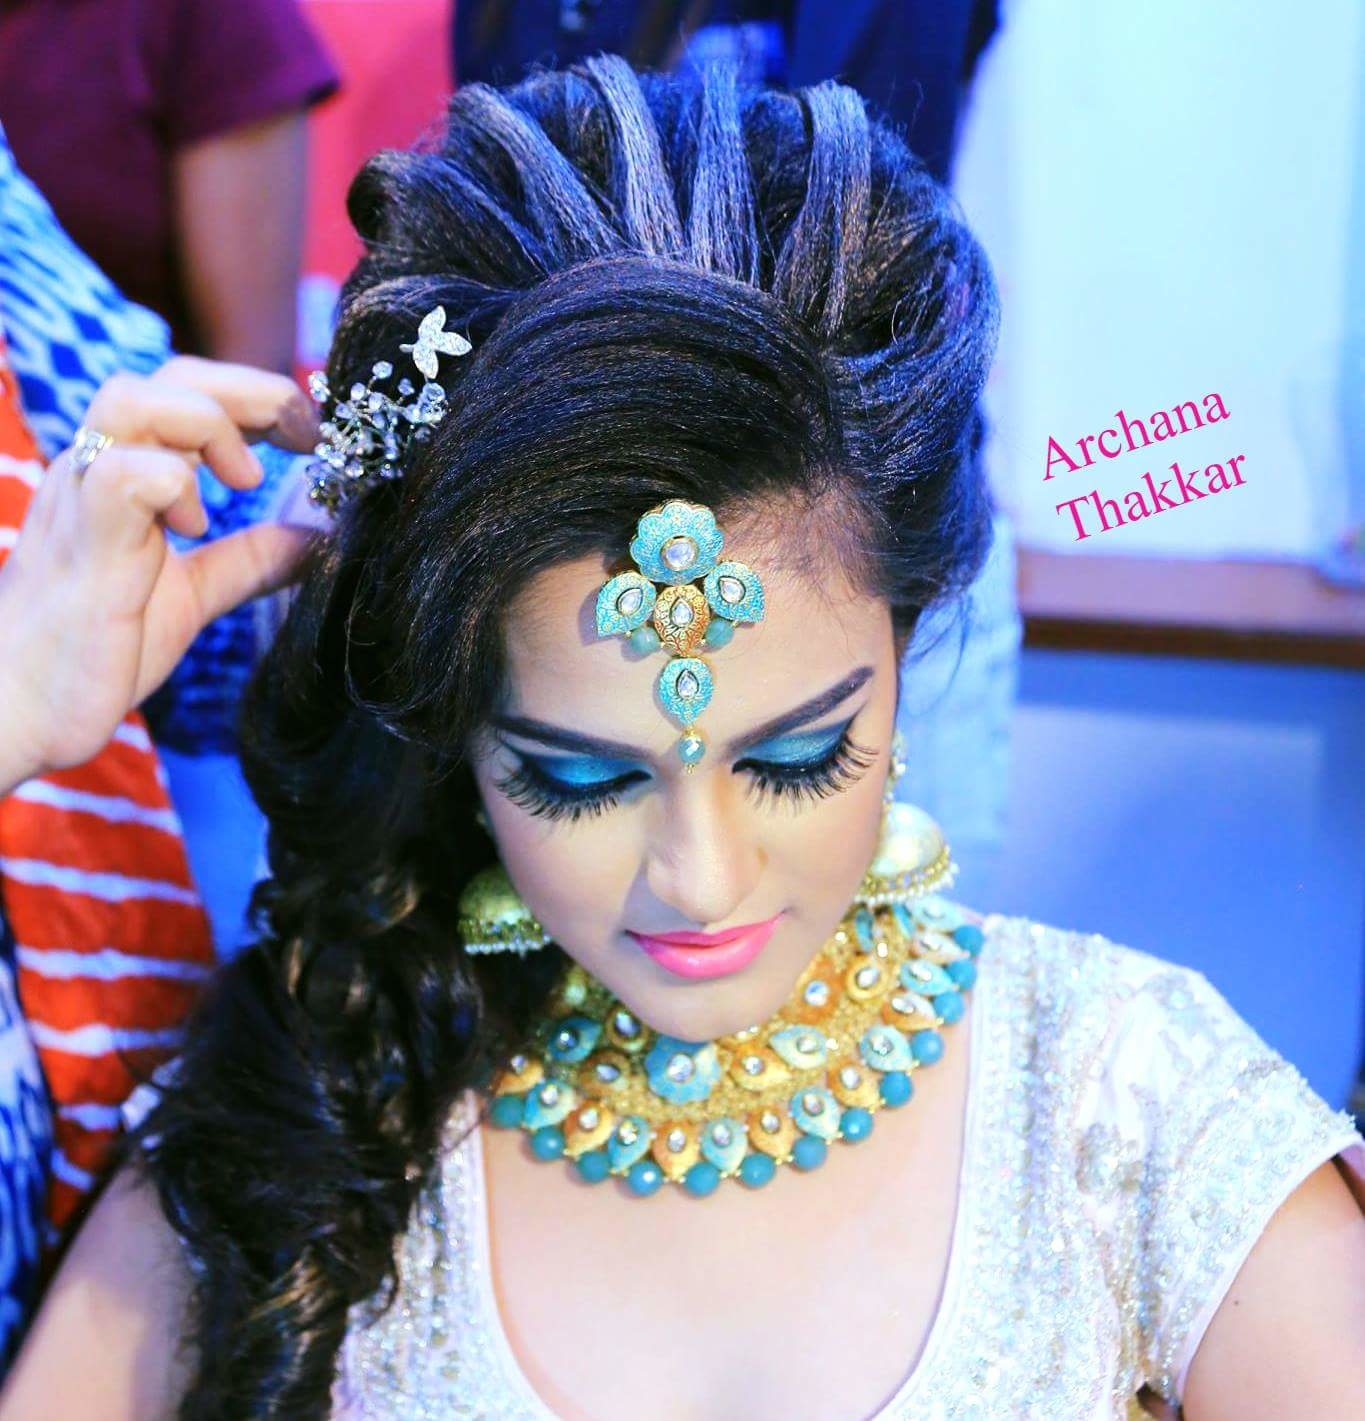 International Hair Styling on Real hair is something Diffrent.... Archana Thakkar Master Class of Hairstyle & Makeup Begins from 3rd January to 7th. 2018. Learn new Latest Trends for upcoimg season....... we offer practice using our makeup products, we offer free stay for out station students..... calll-whatsapp : 9769494898.